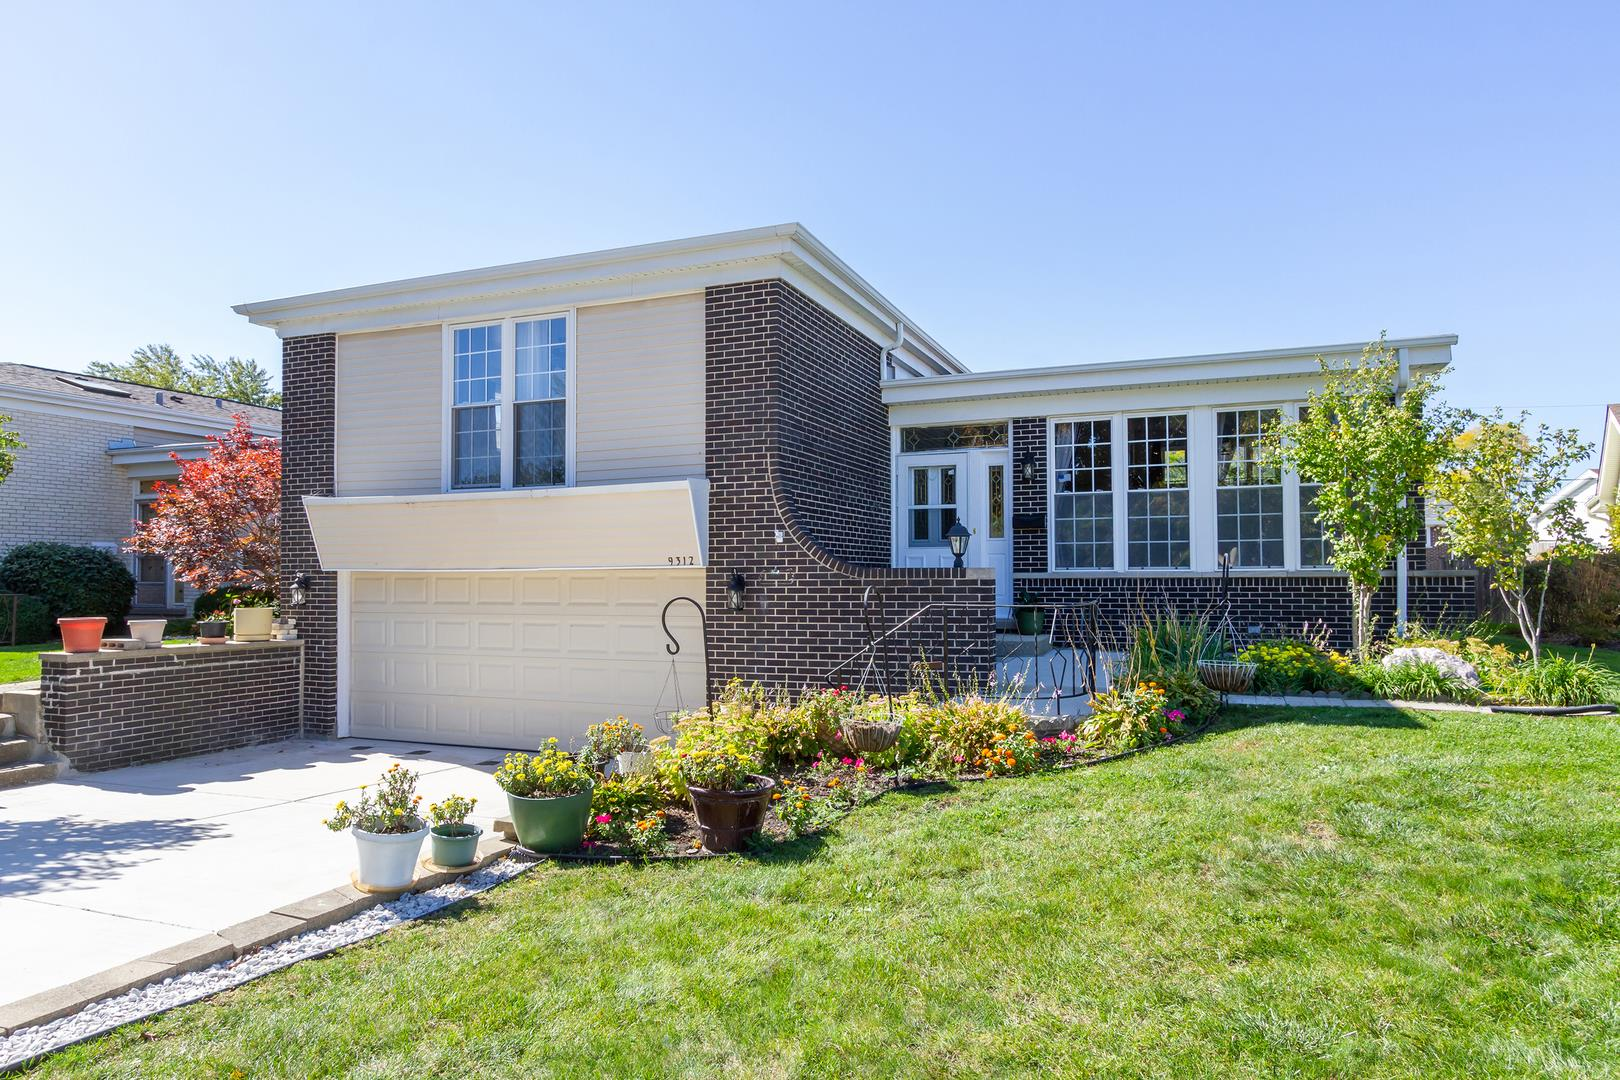 9312 MICHAEL Court, Morton Grove, IL 60053 - #: 10938112